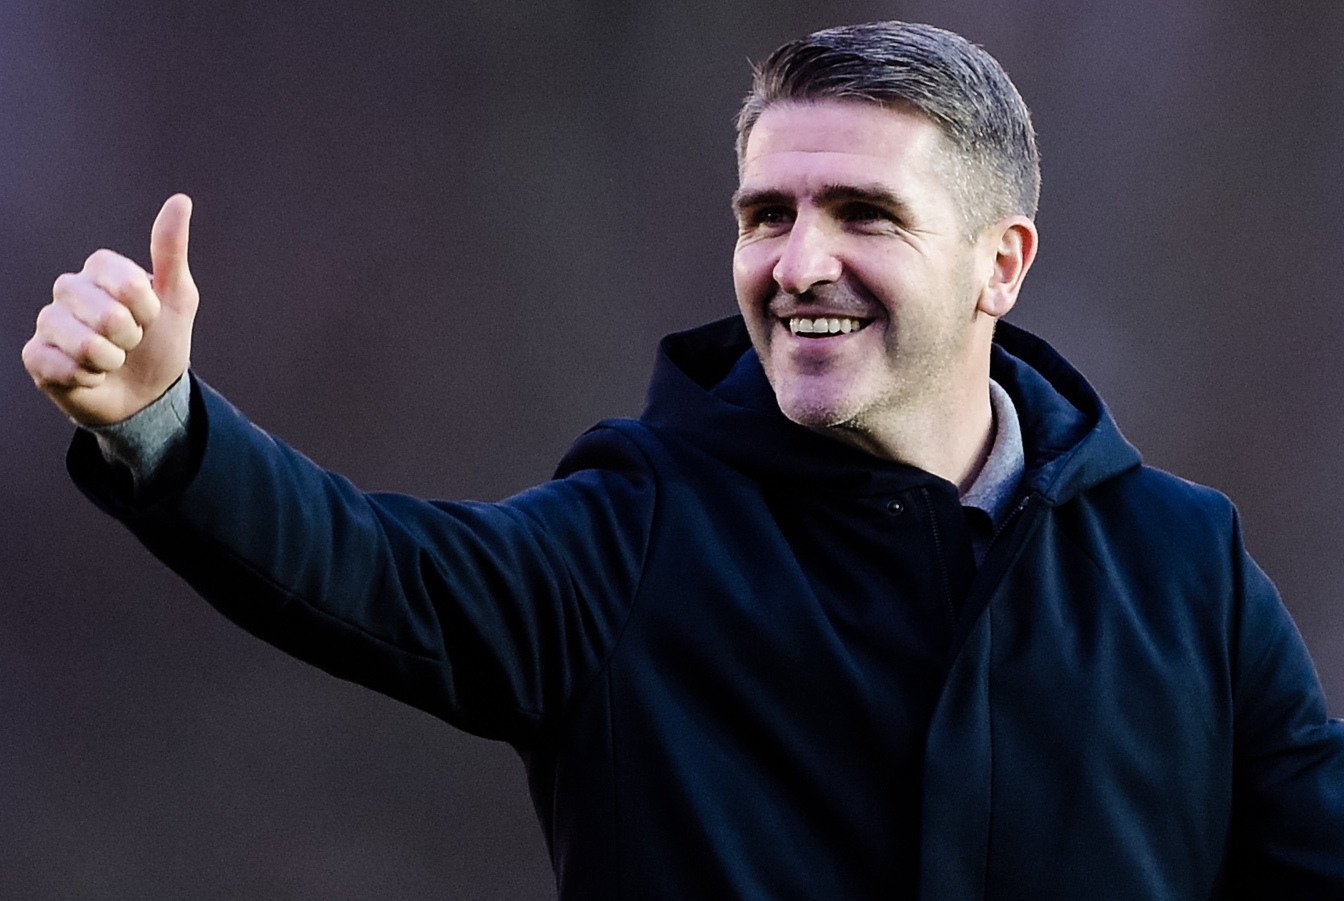 Bury manager Ryan Lowe after the Sky Bet League 2 match between Exeter City and Bury FC at St James' Park, Exeter on Saturday 16th February 2019. Credit: Andy Whitehead..Self-billing applies where appropriate - info@andywhiteheadphotography.com - NO UNPAI